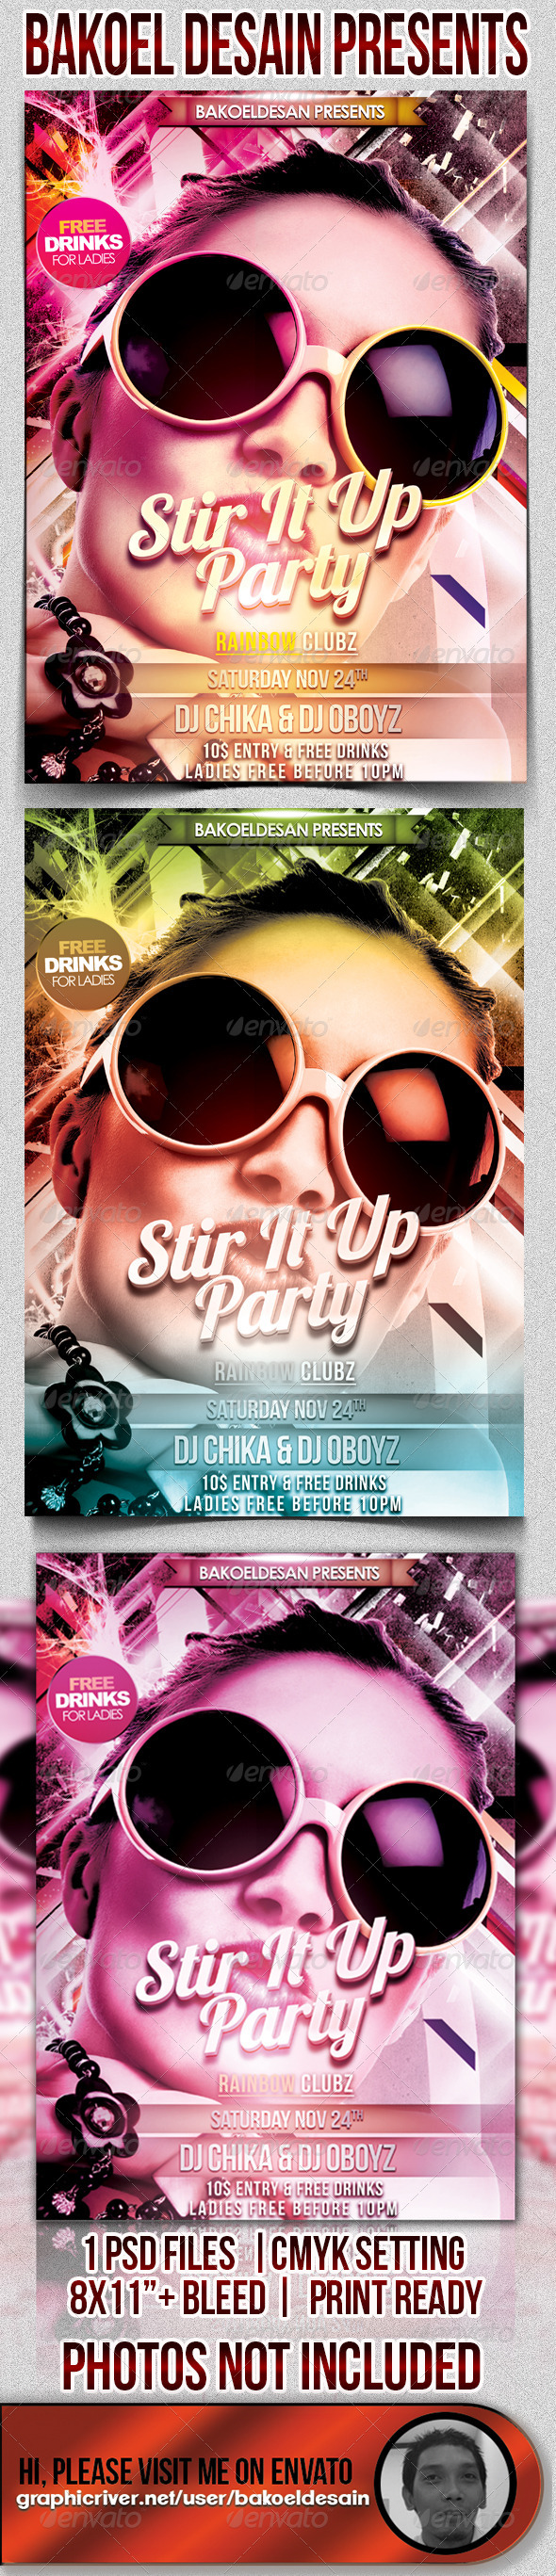 Stir It Up Party Flyer - Clubs & Parties Events